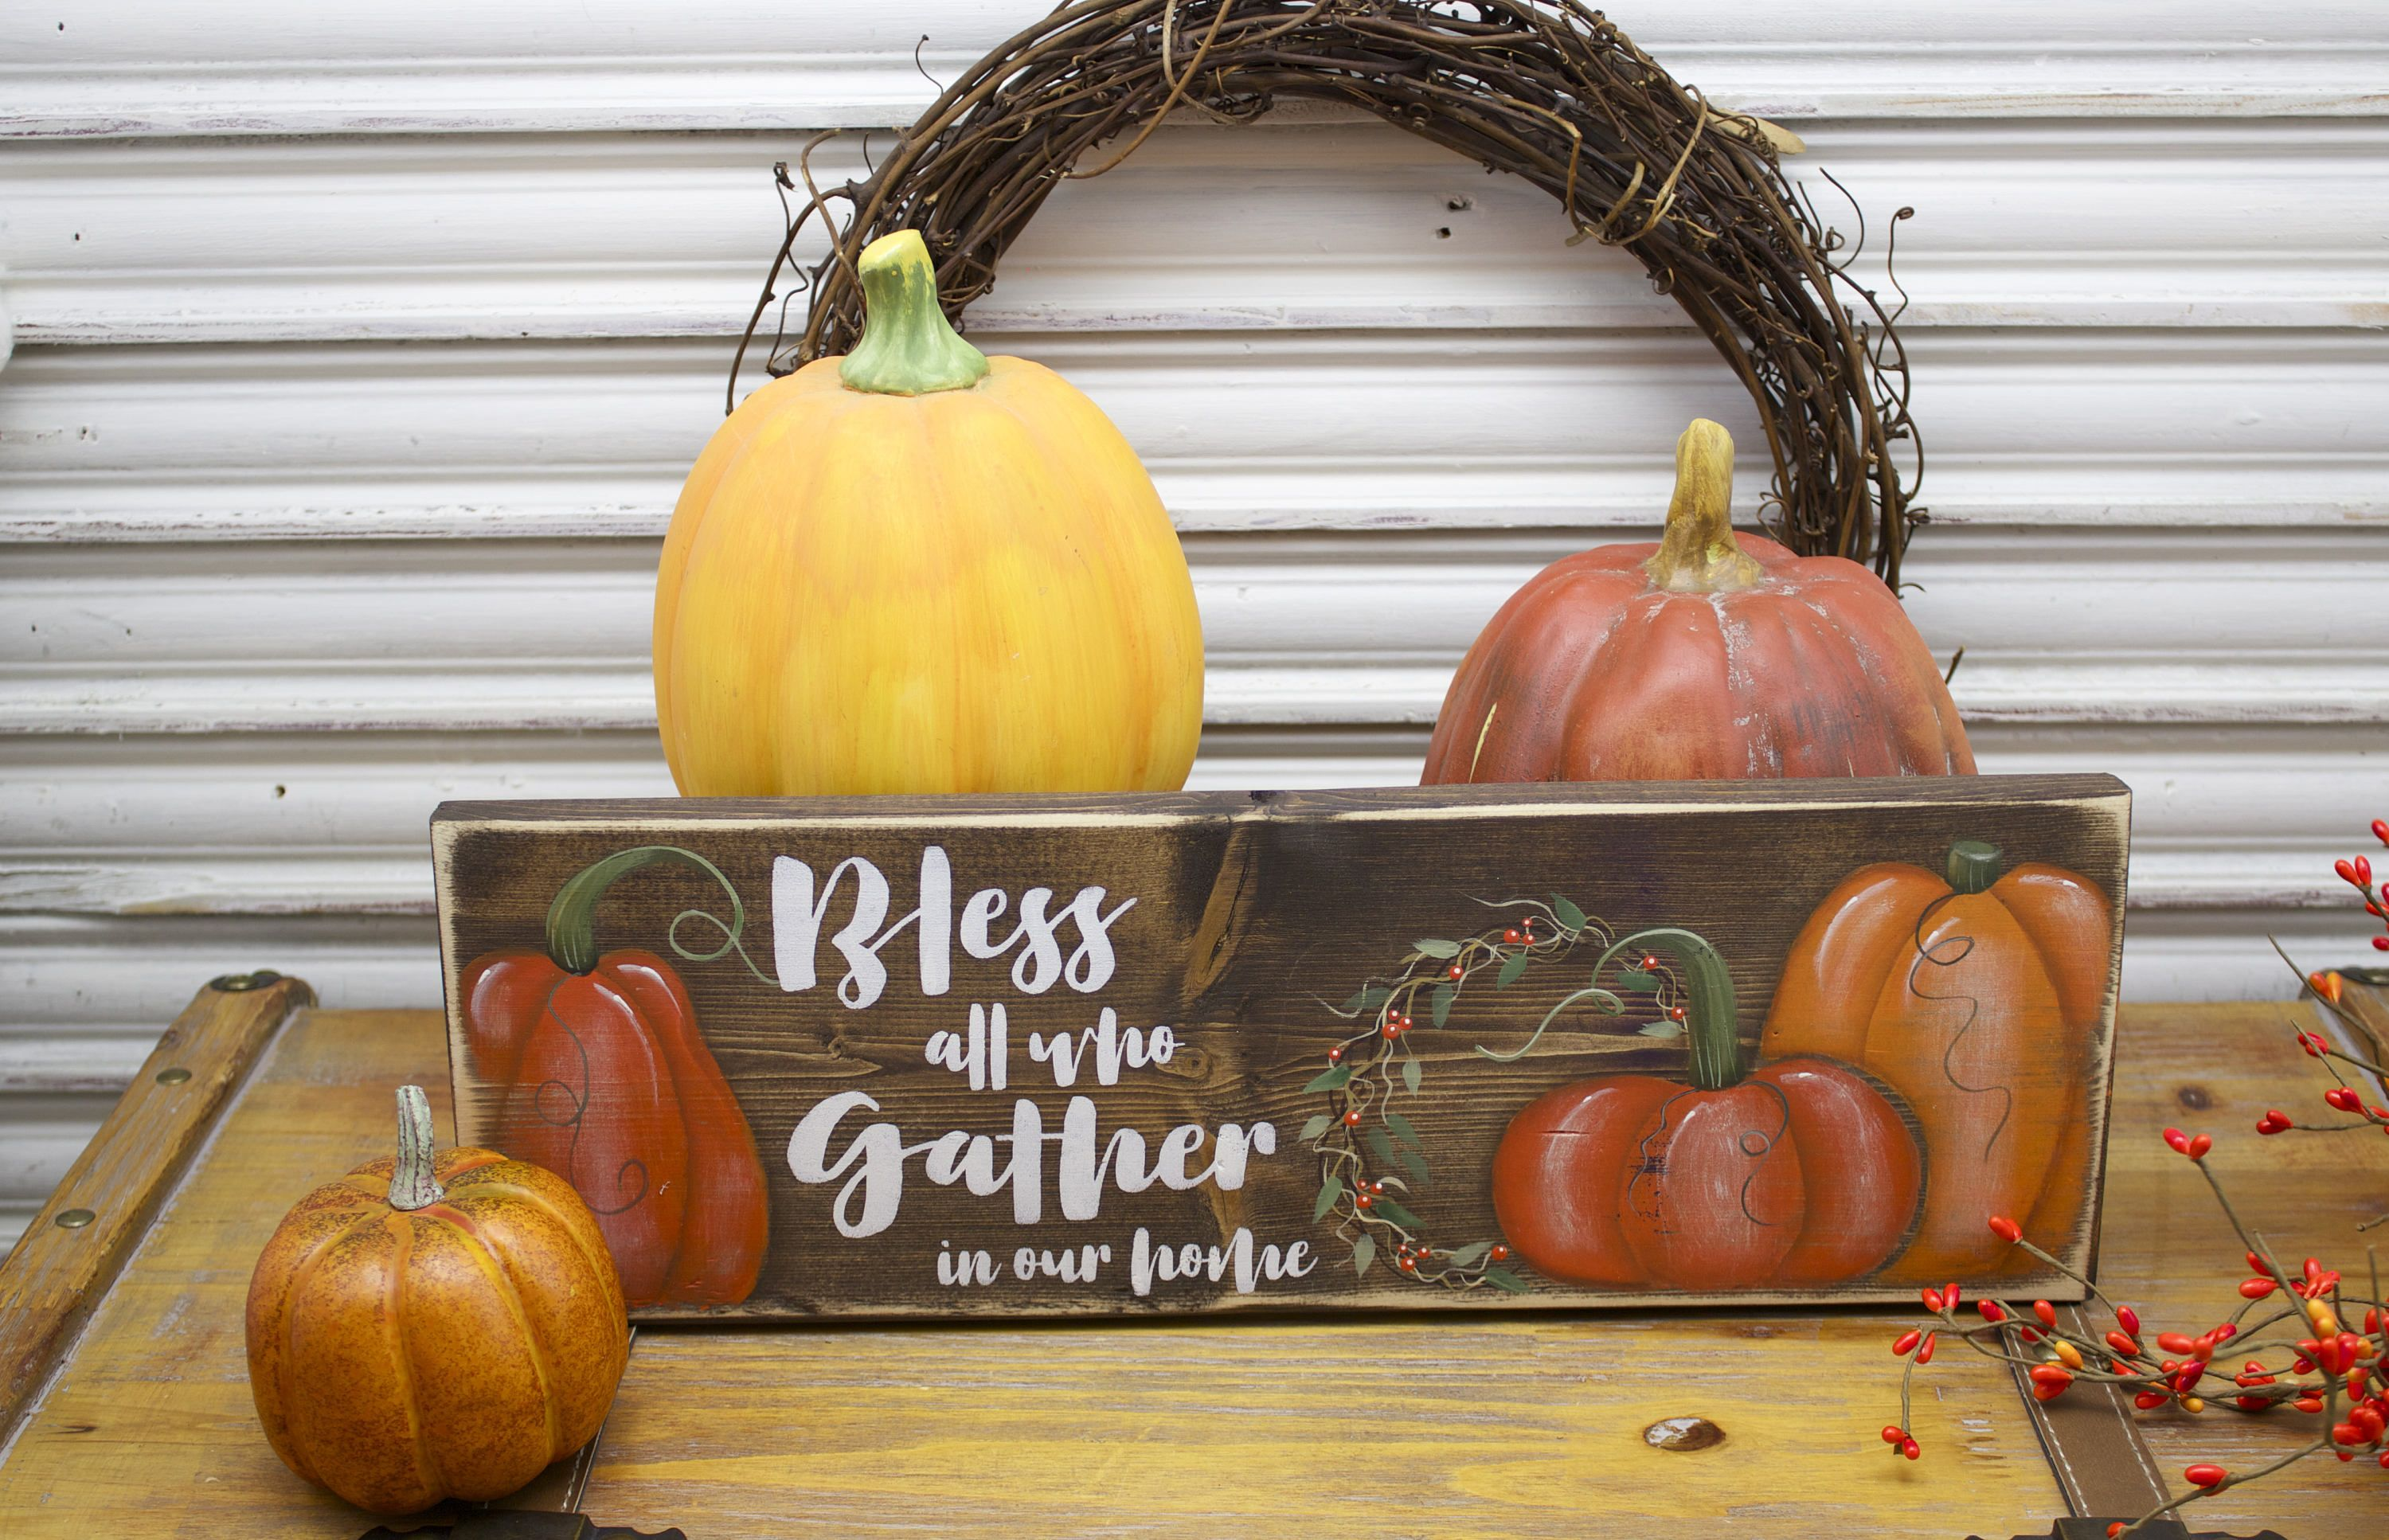 Blessed Wood Sign Gather Sign Rustic Fall Decor Pumpkin Patch Fall Wreath Pumpkins Rustic Fall Autumn Decor Bles Rustic Fall Decor Wood Signs Fall Decor